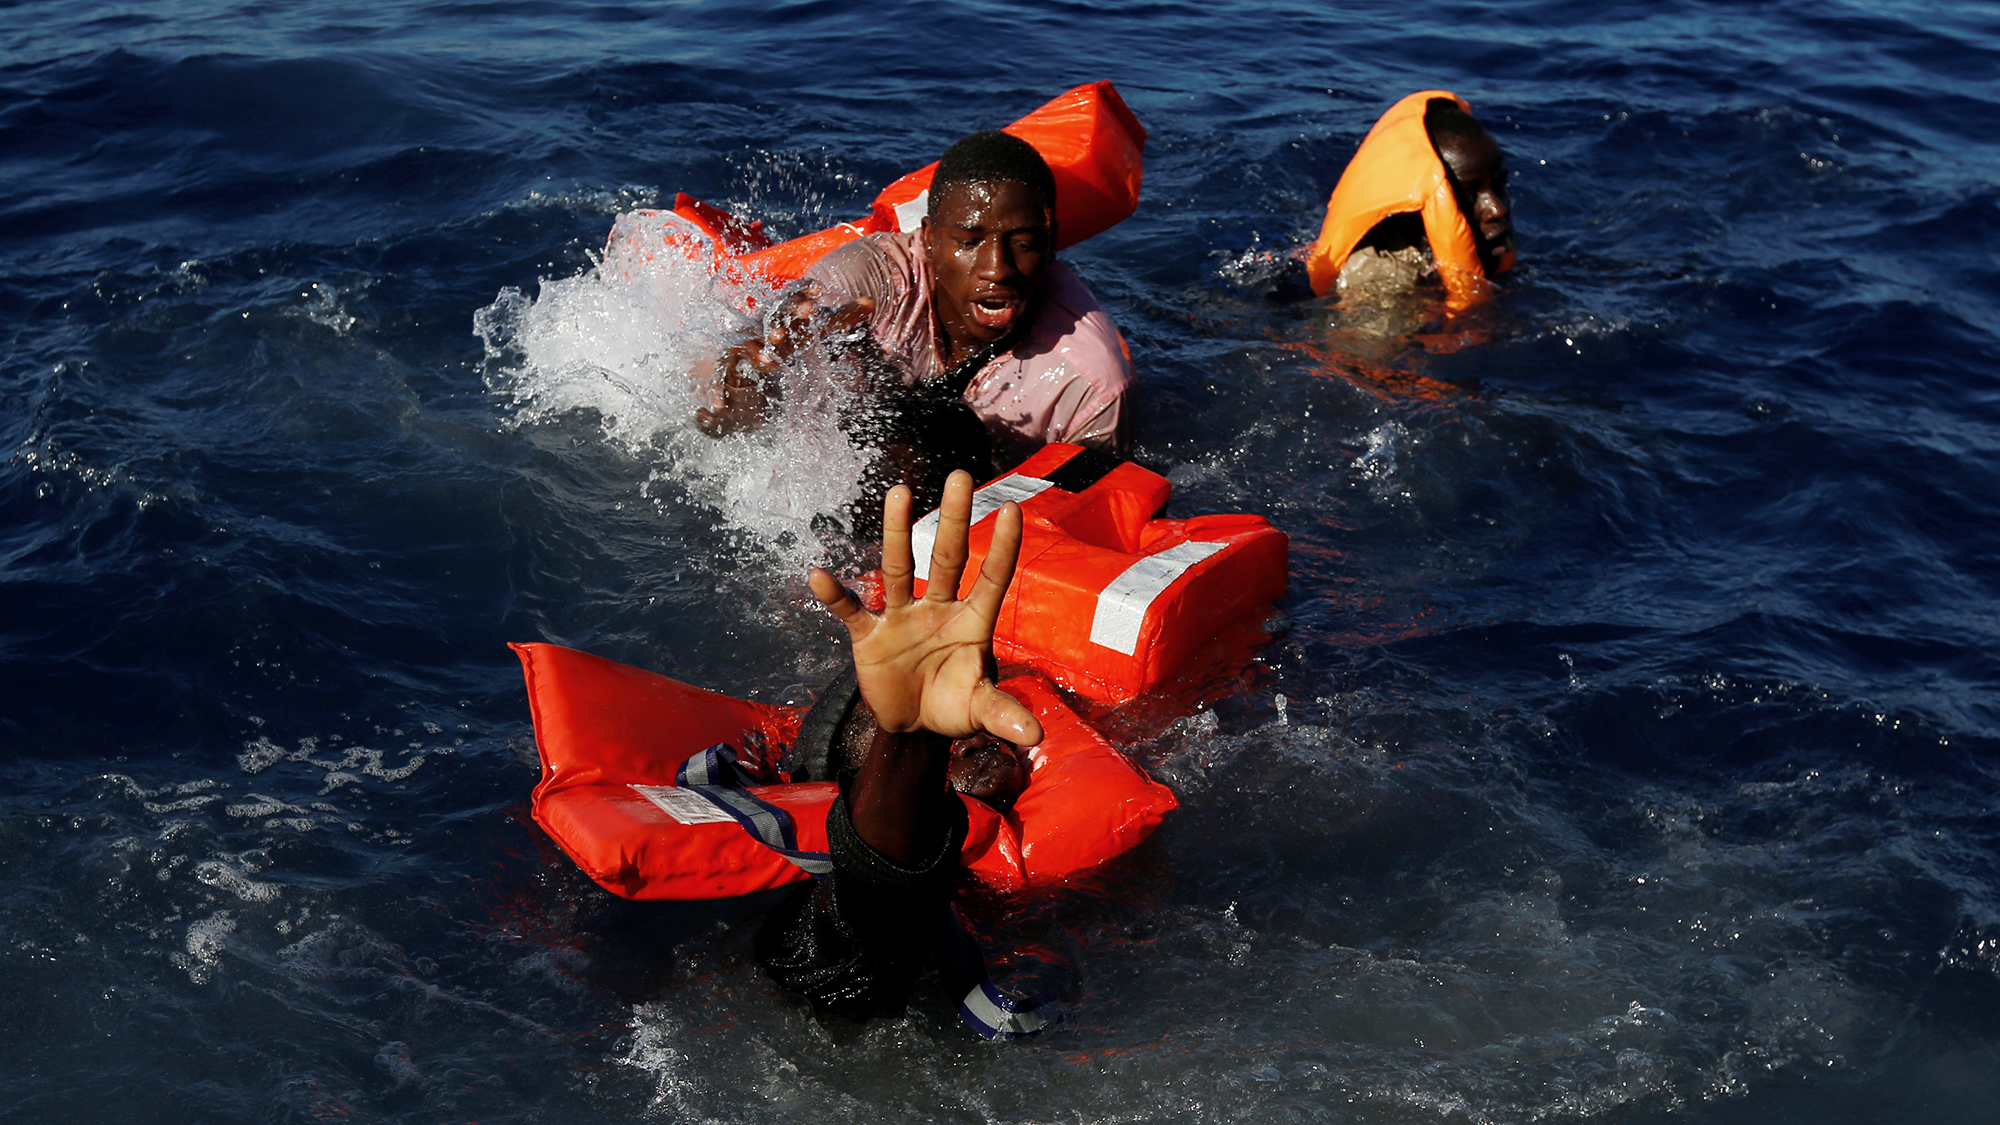 Migrants try to stay afloat after falling off their rubber dinghy during a rescue operation by the Malta-based NGO Migrant Of